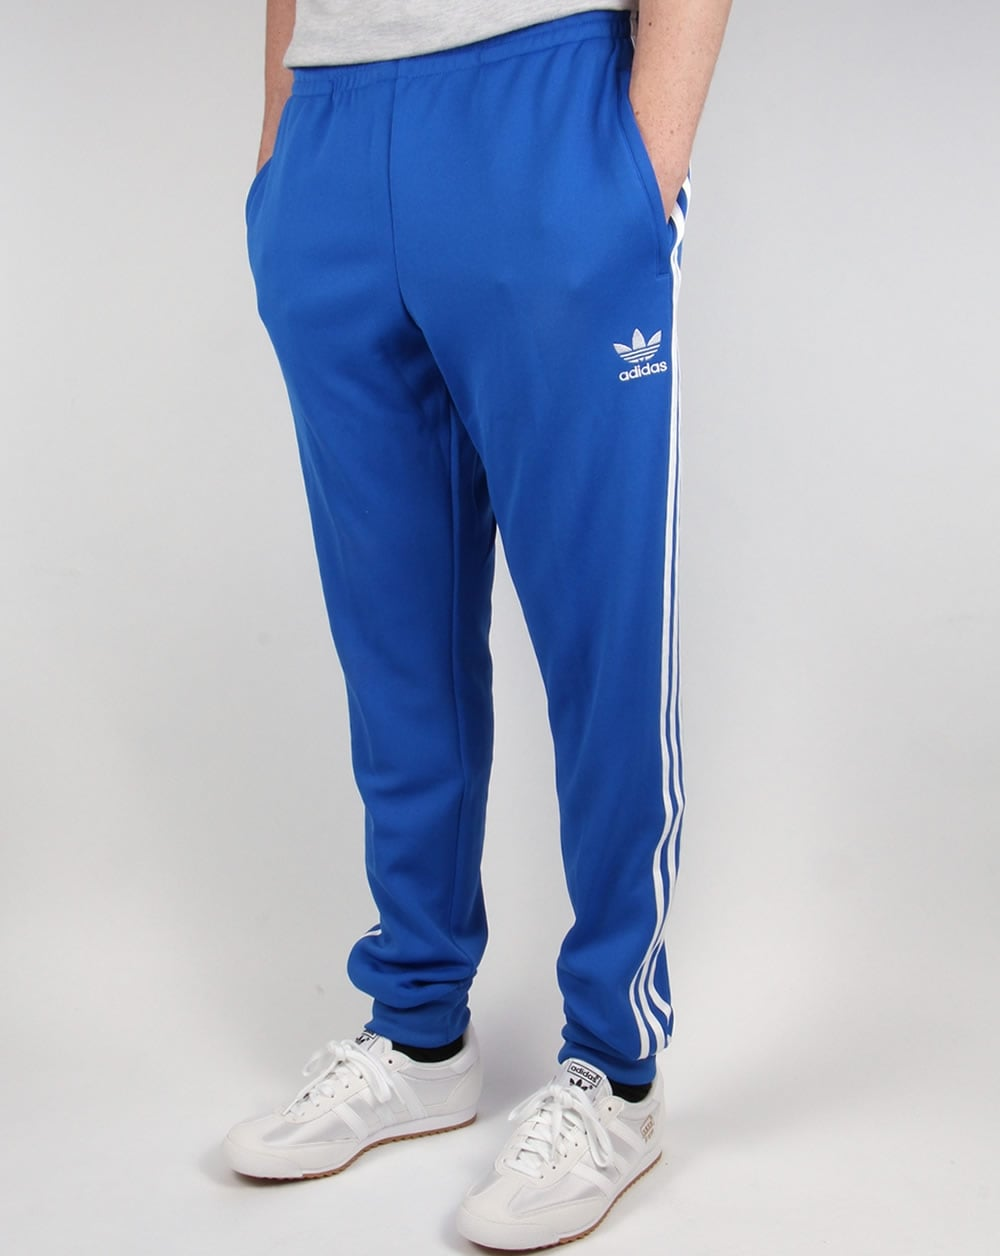 adidas original suit mens